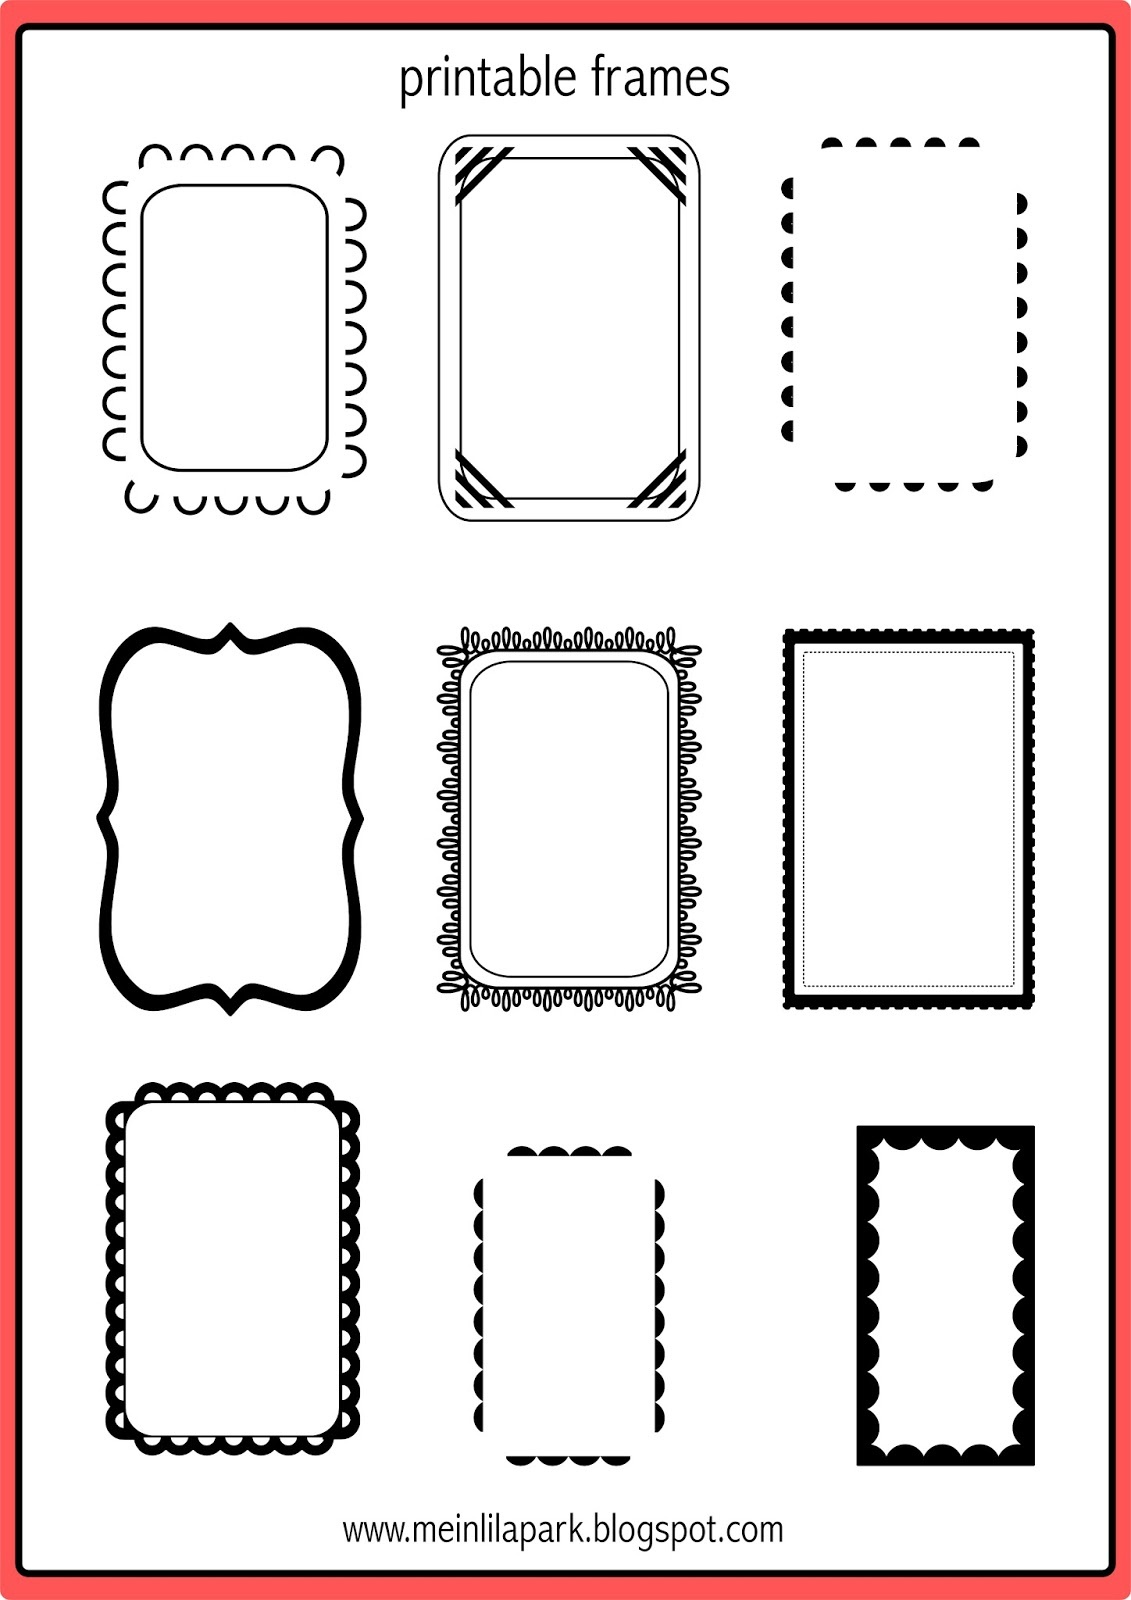 Free Printable Doodle Frames - Bullet Journal Template - Freebie - Free Printable Photo Frames